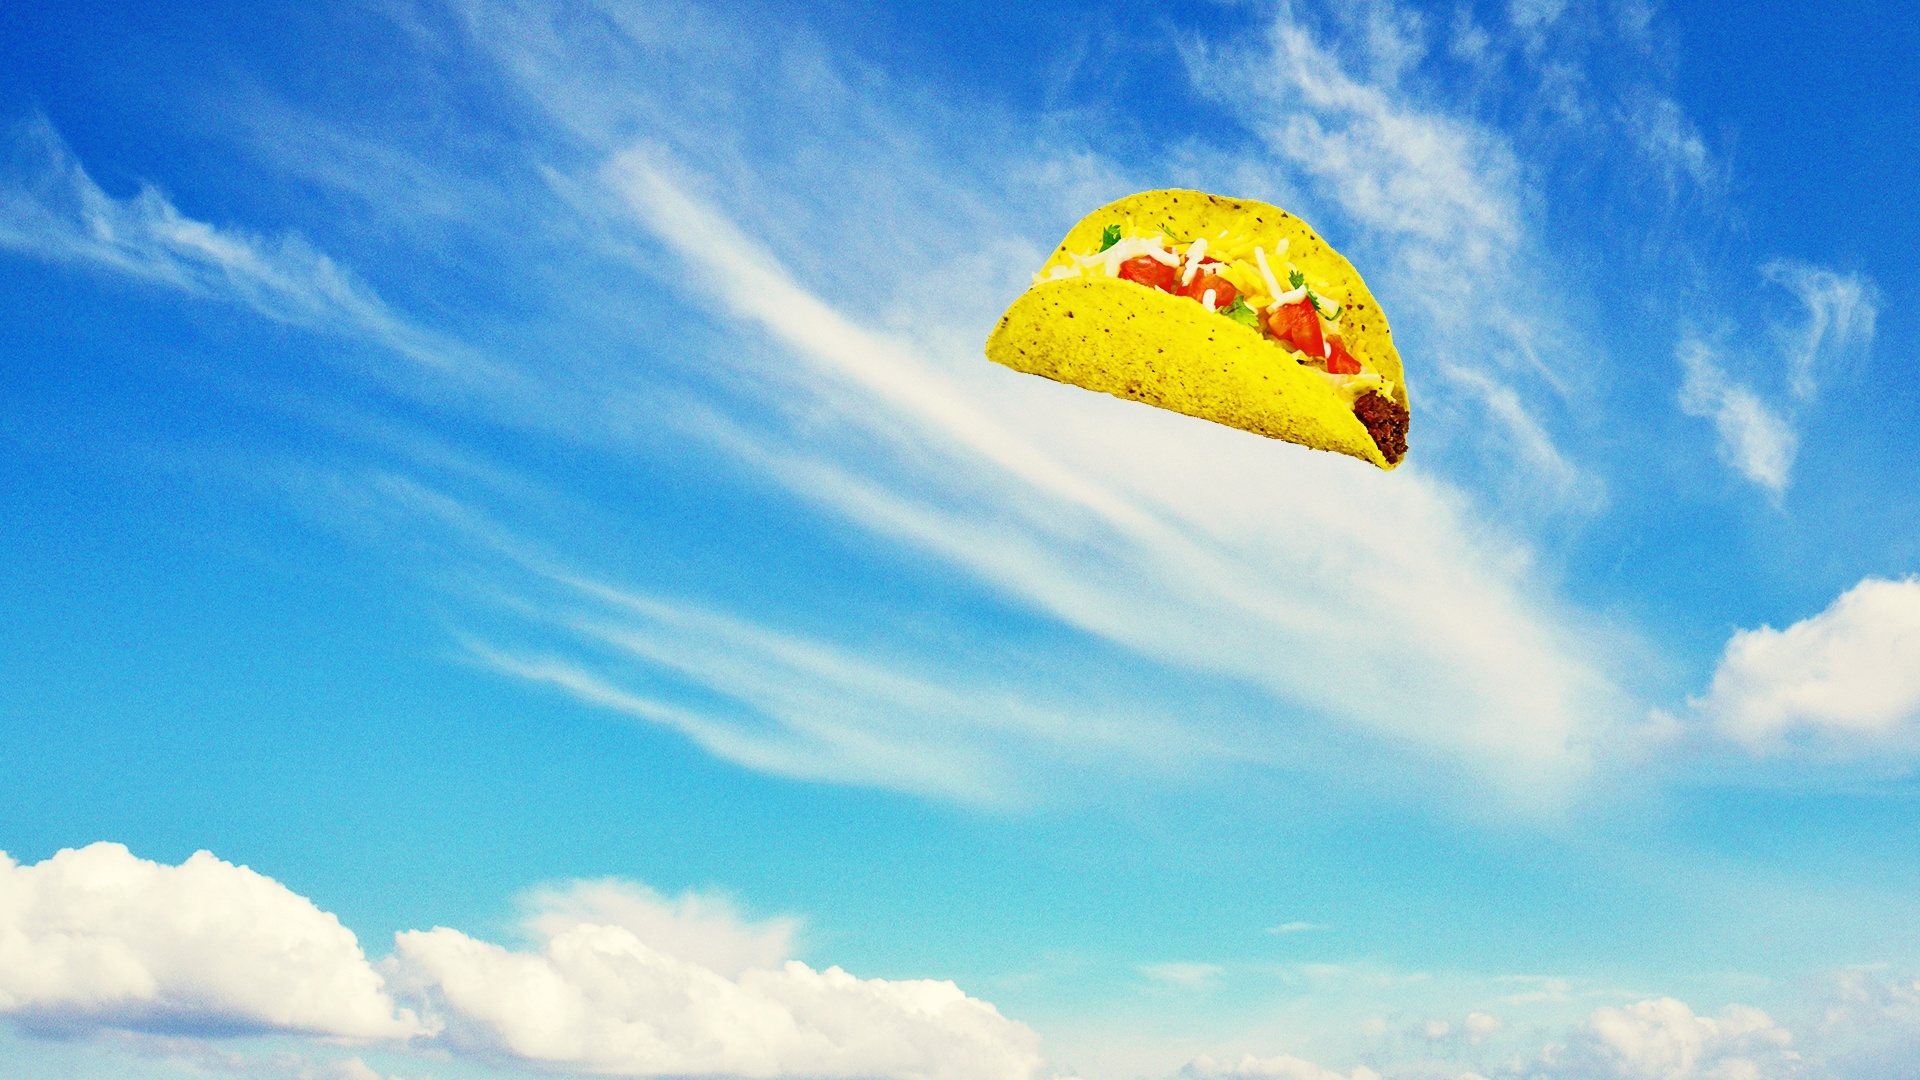 Taco Wallpaper for pc